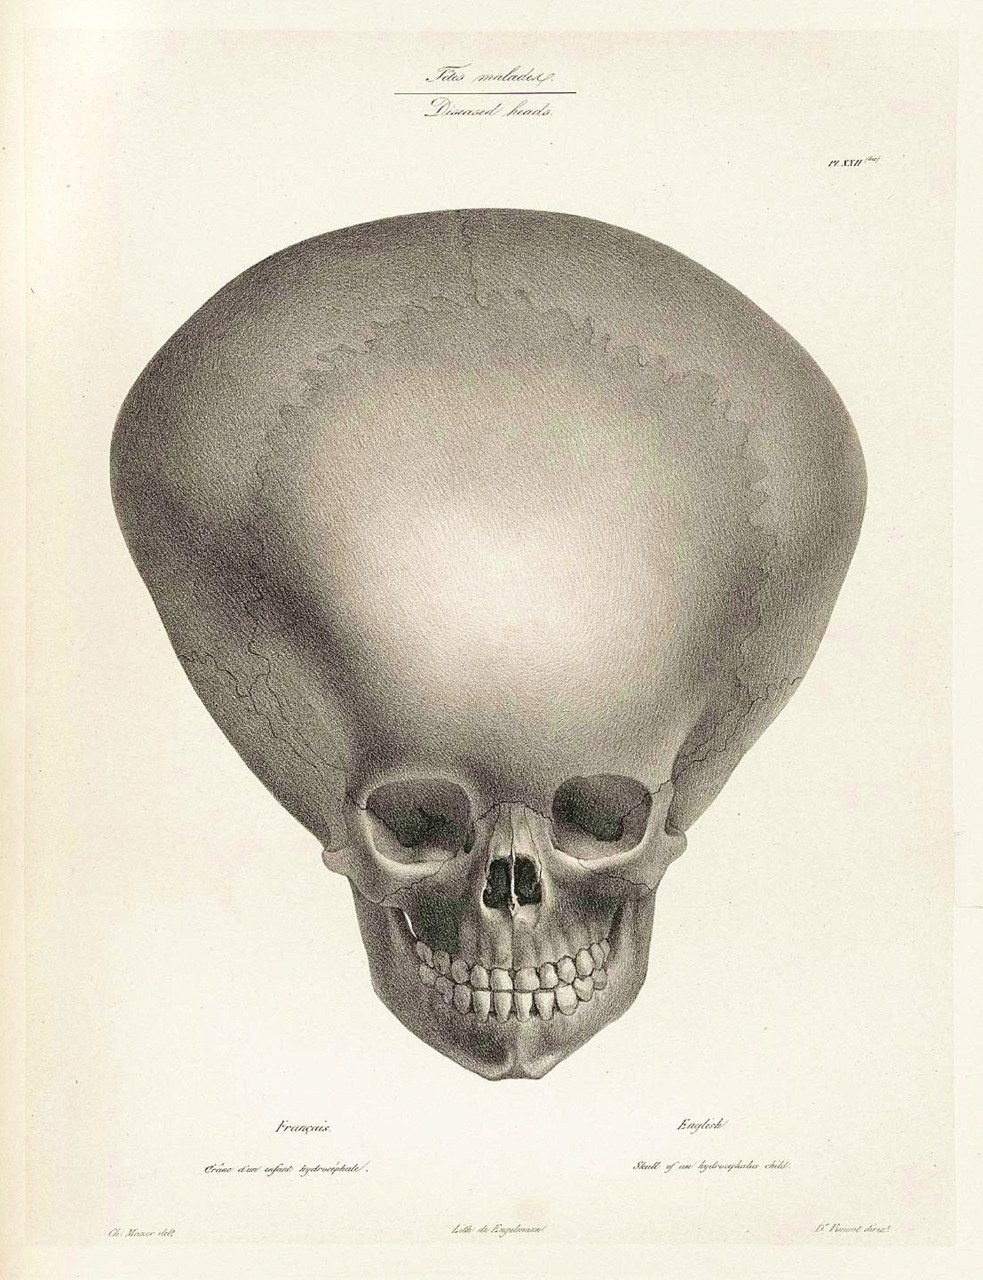 Mars Attacks! Depiction of an hydrocephalic Skull (caused by an abnormal accumulation of cerebrospinal fluid), published in Joseph Vimont's Traité de Phrénologie Humaine - 1832